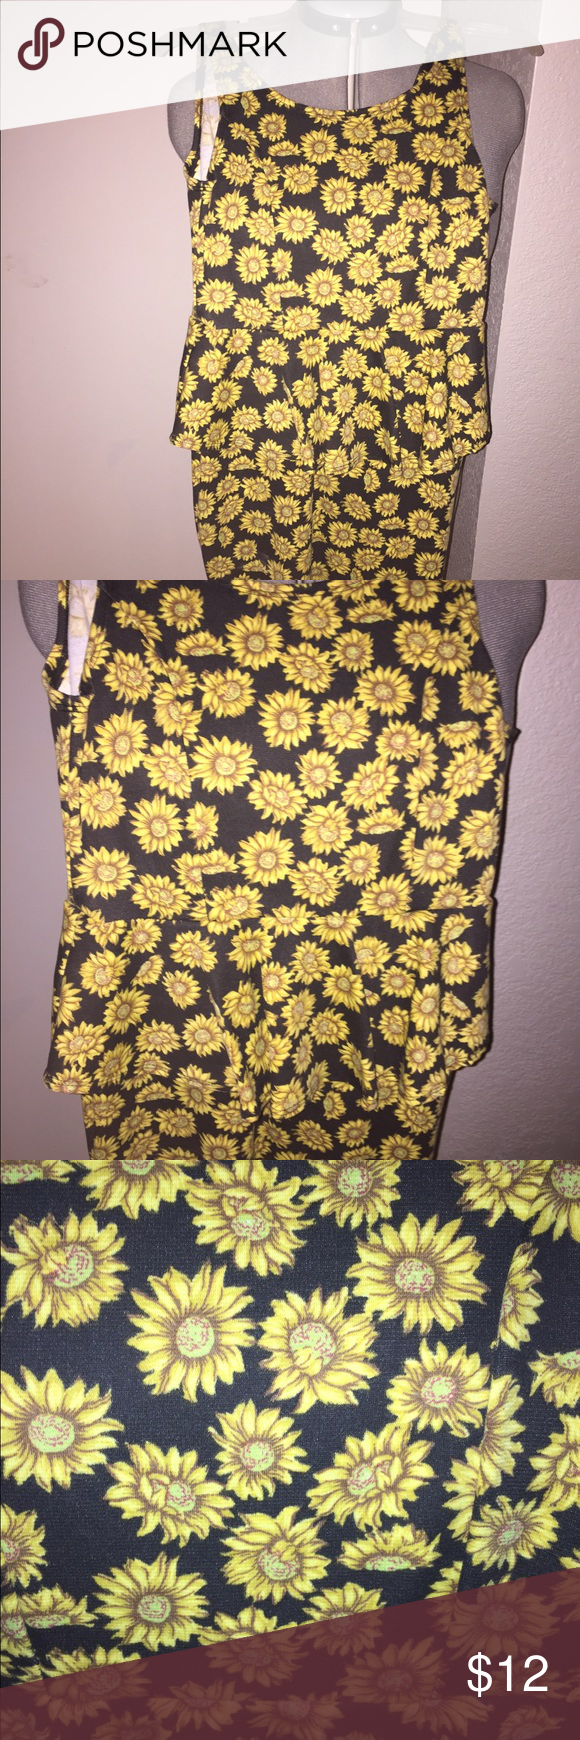 NWOT black & yellow peplum sunflower dress Fitted peplum dress with sunflowers all over. New without tags, never worn. Perfect for summer. 😊🌻 Chesley Dresses Mini